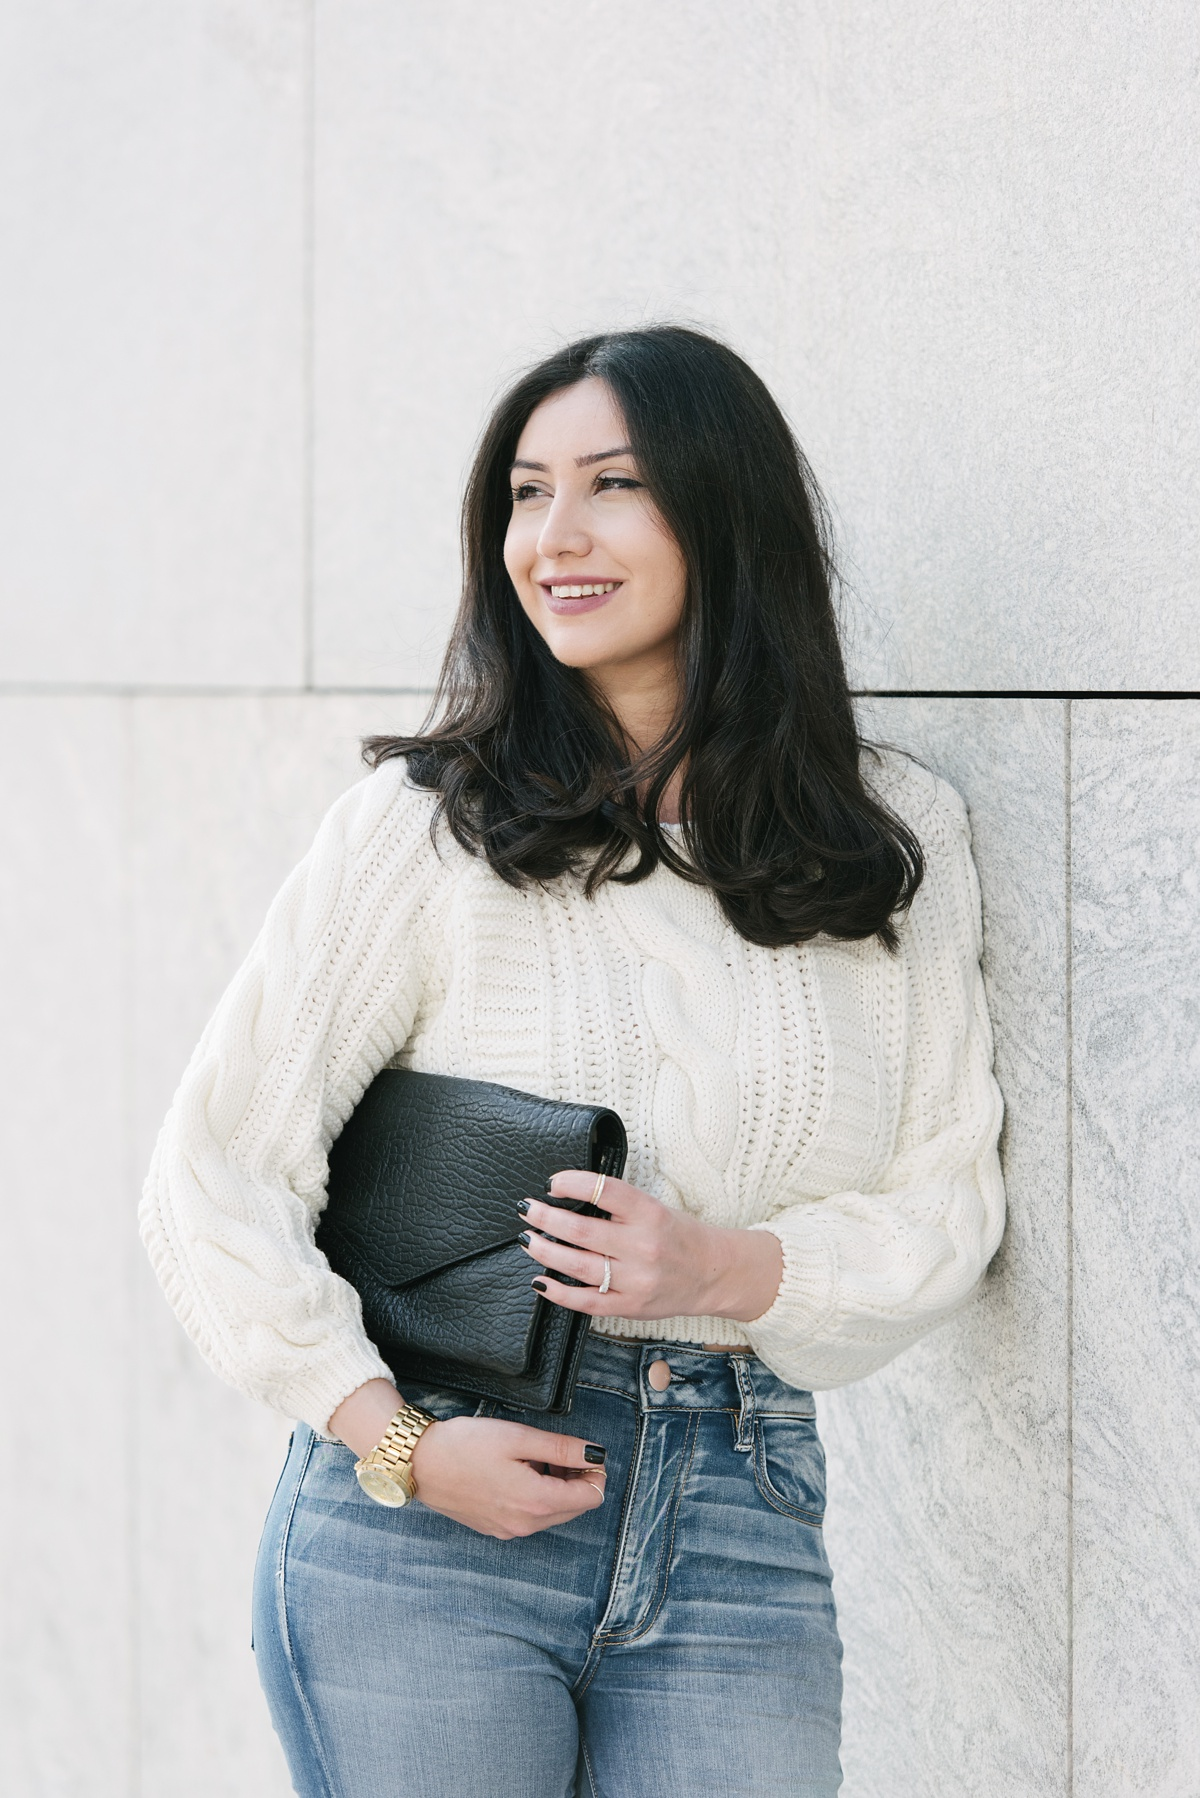 The Chunky Sweater Every Girl Needs